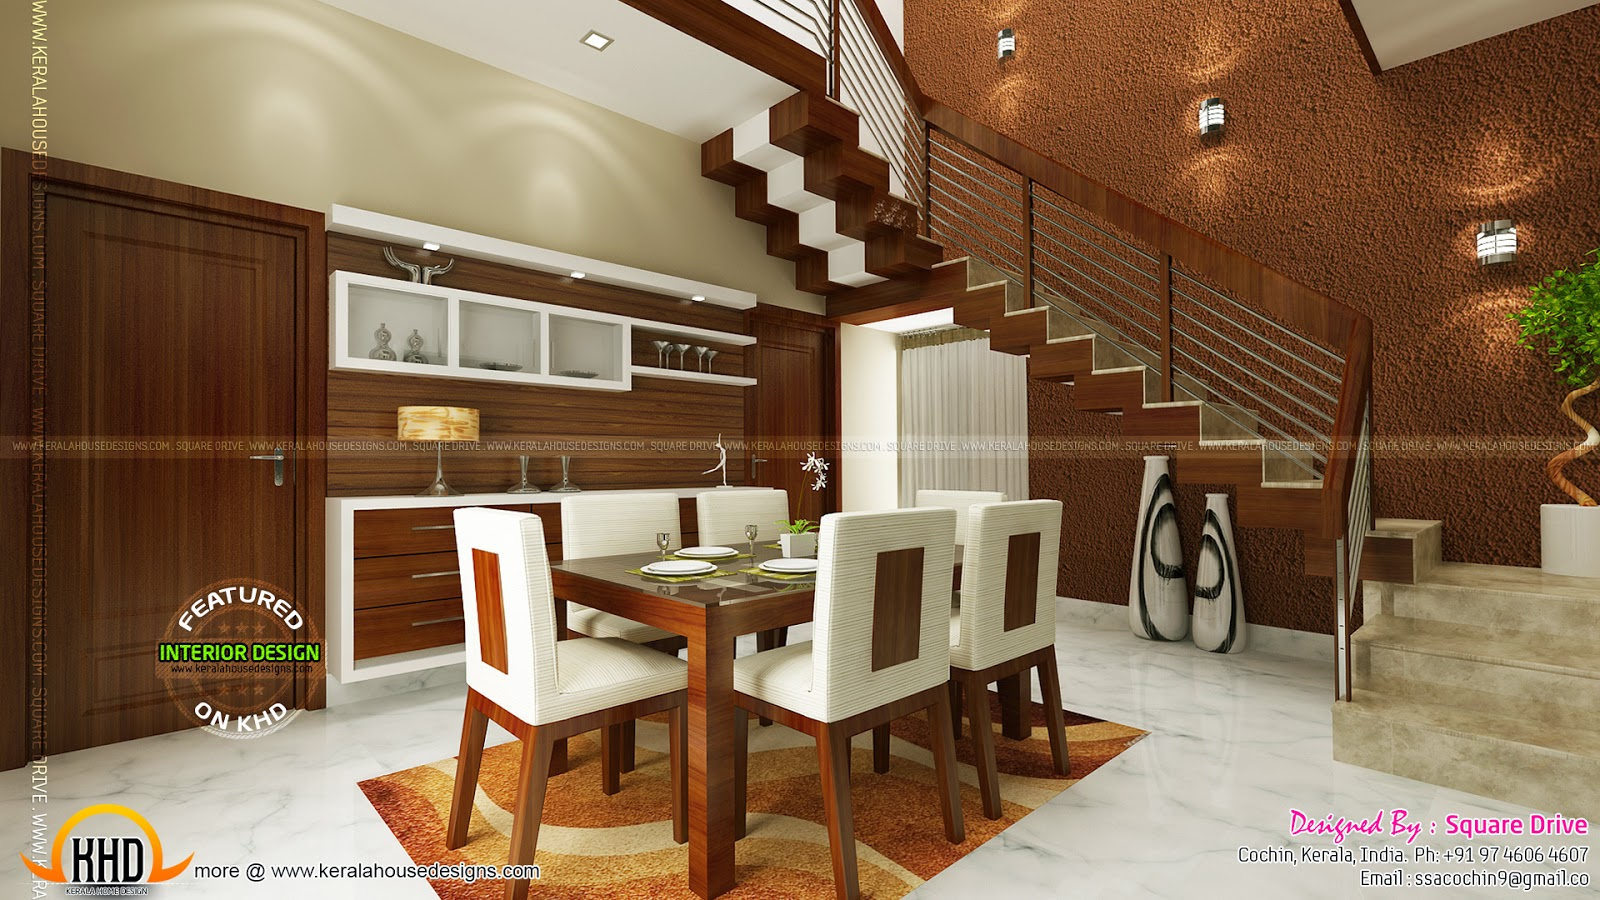 Cochin interior design kerala home design and floor plans for House interior design hall